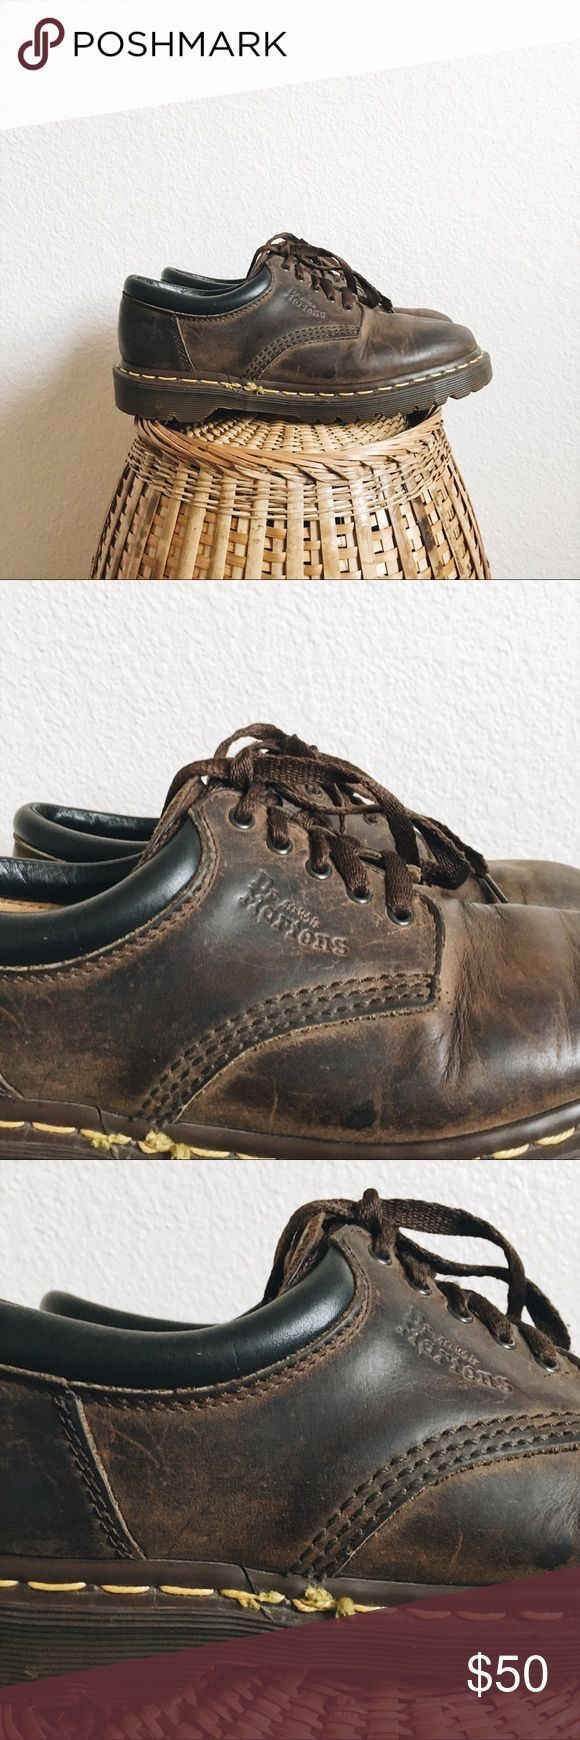 Dr. Martens 8053 Leather Shoes Classic made in England leather shoes in style #8053. Gently used condition but we all know these last forever. Marked a size 5, but it doesn't specify US or UK sizing. Does not fit like a women's US size 5, it's bigger and fits more like a size 7.5/8. Dr. Martens Shoes Ankle Boots & Booties